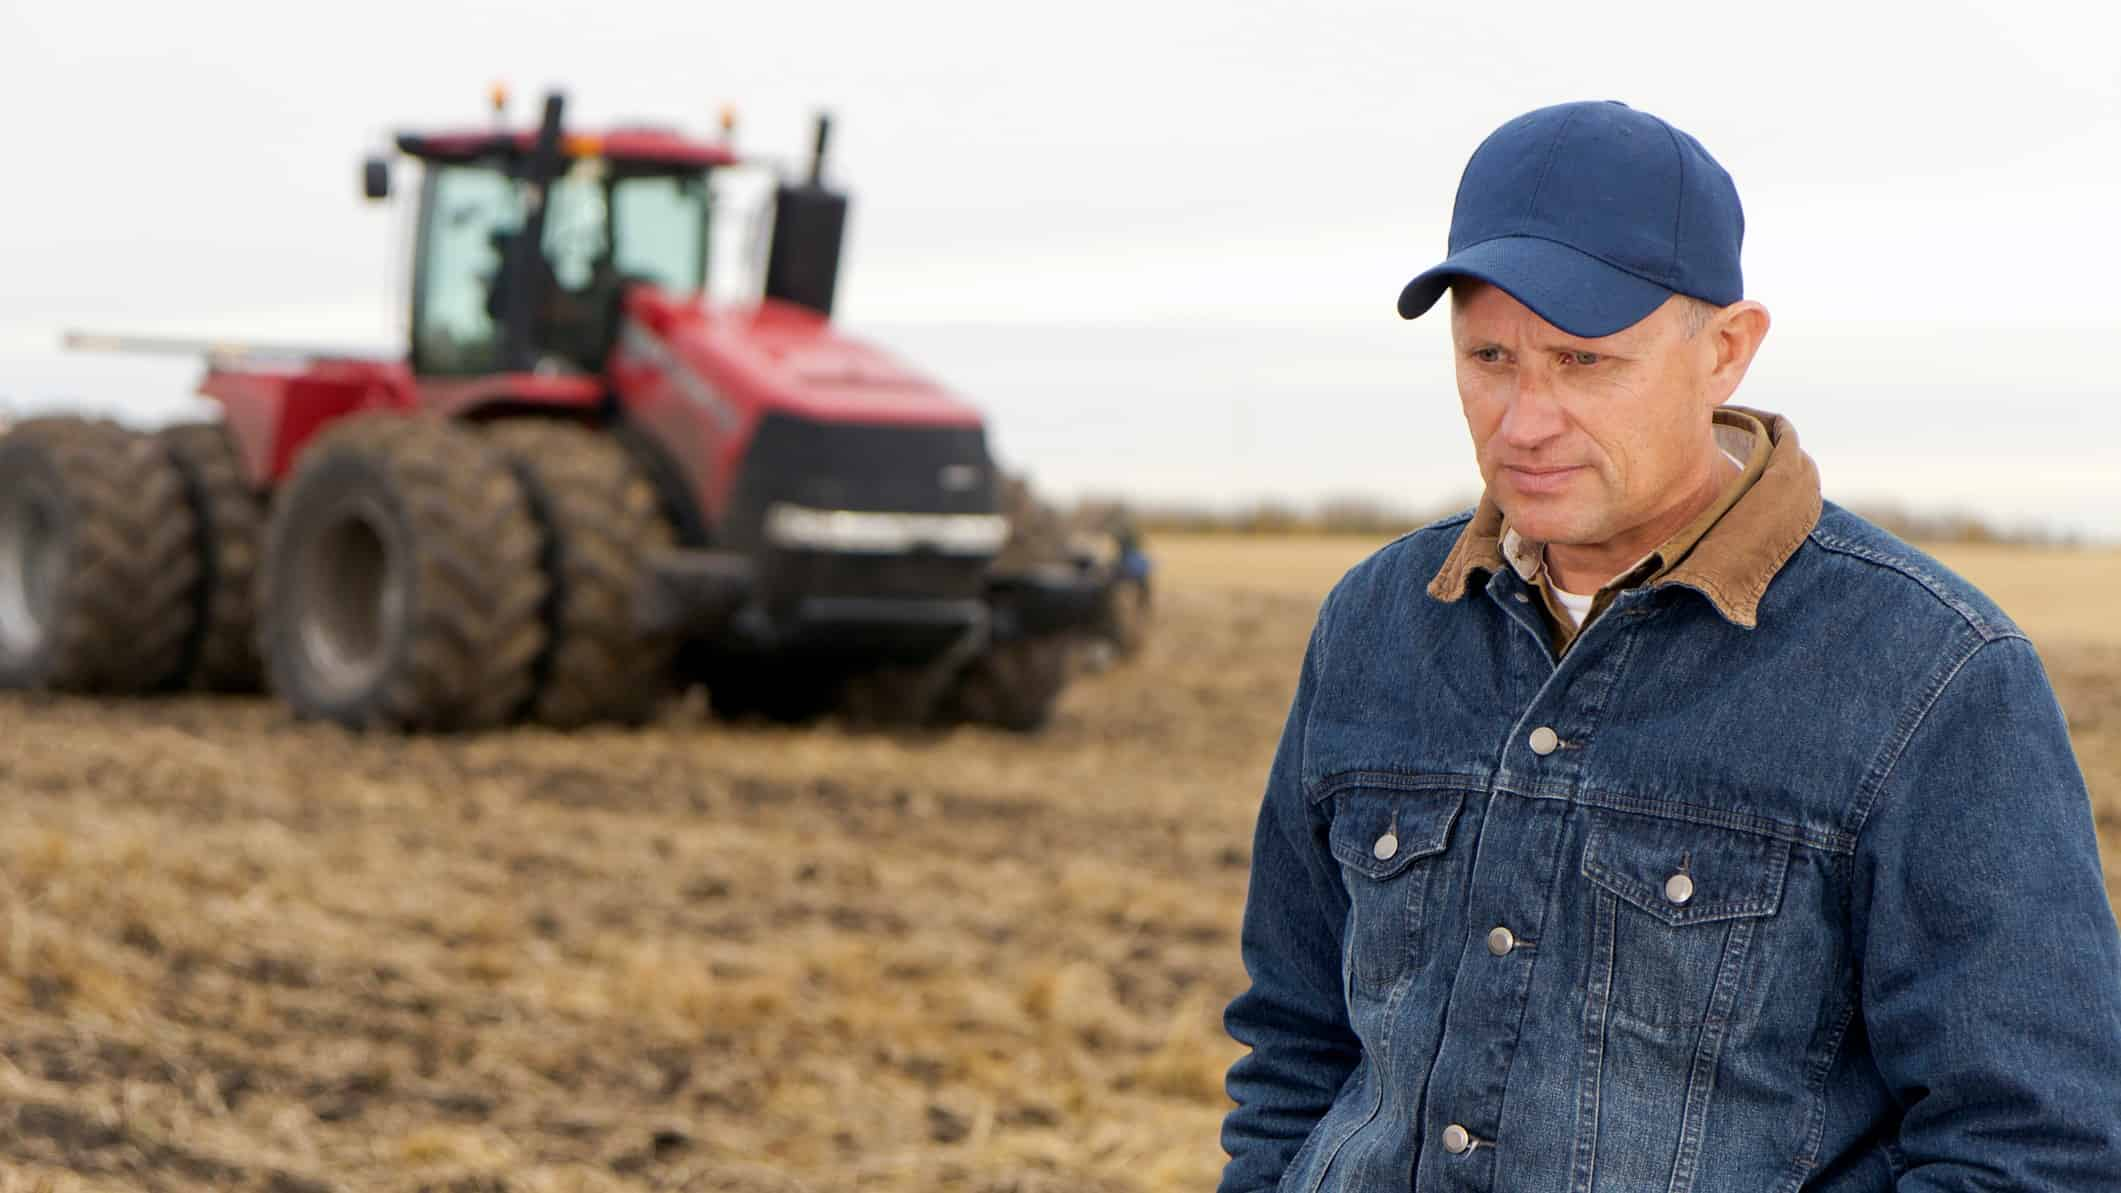 sad and disappointed farmer on a farm with a tractor in the background